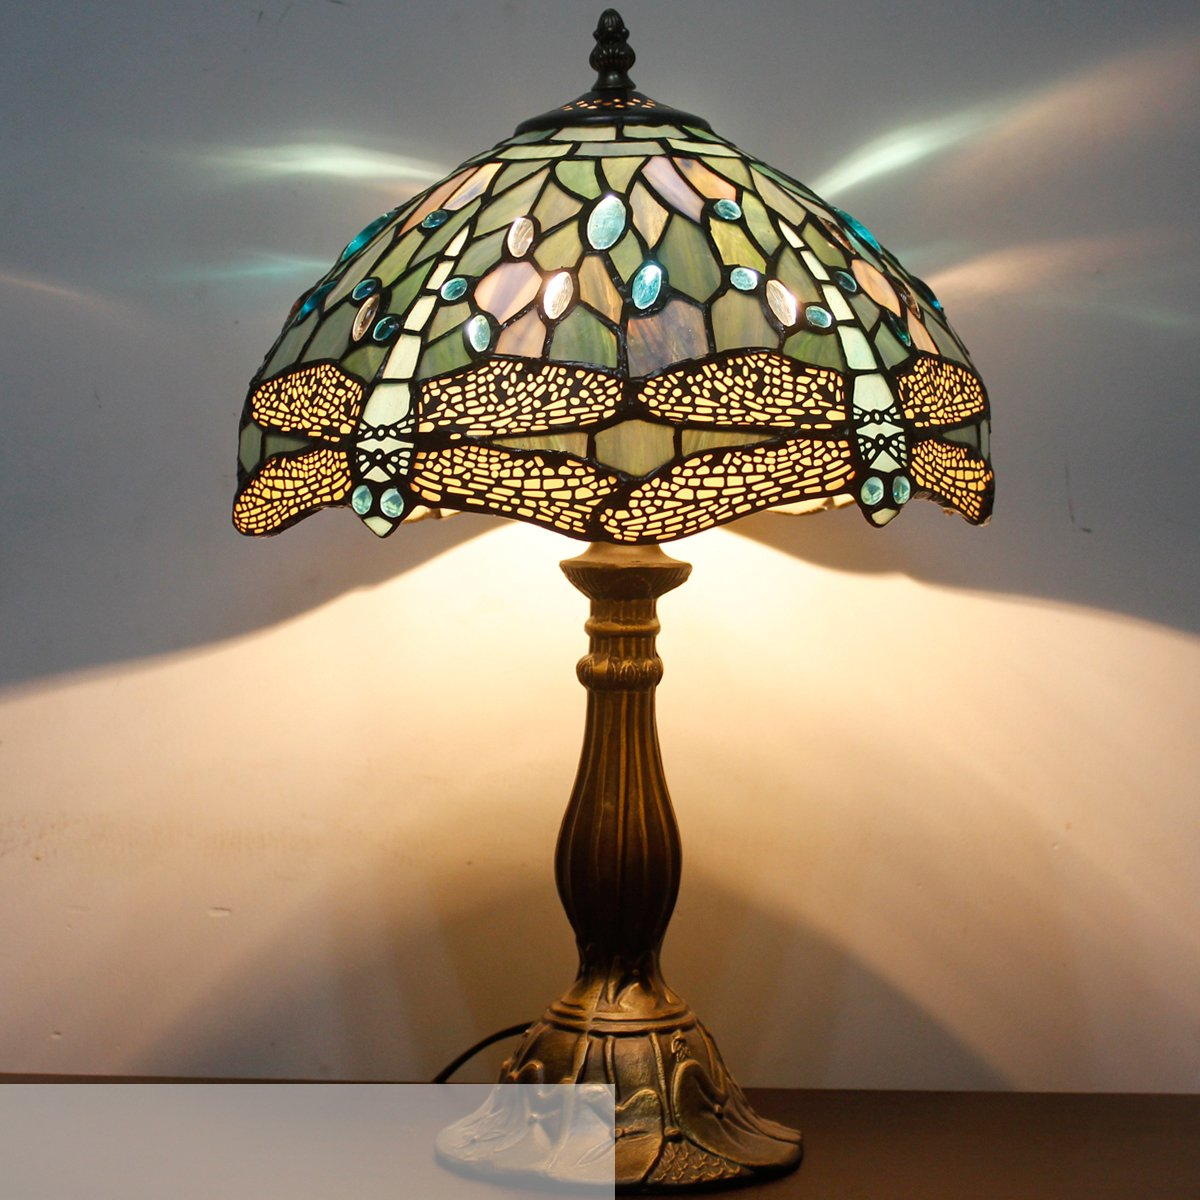 Tiffany Lamp With Sea Blue Stained Glass and Crystal Bead Dragonfly Table Lamp In Height 18 Inch For Living Room by WERFACTORY (Image #7)